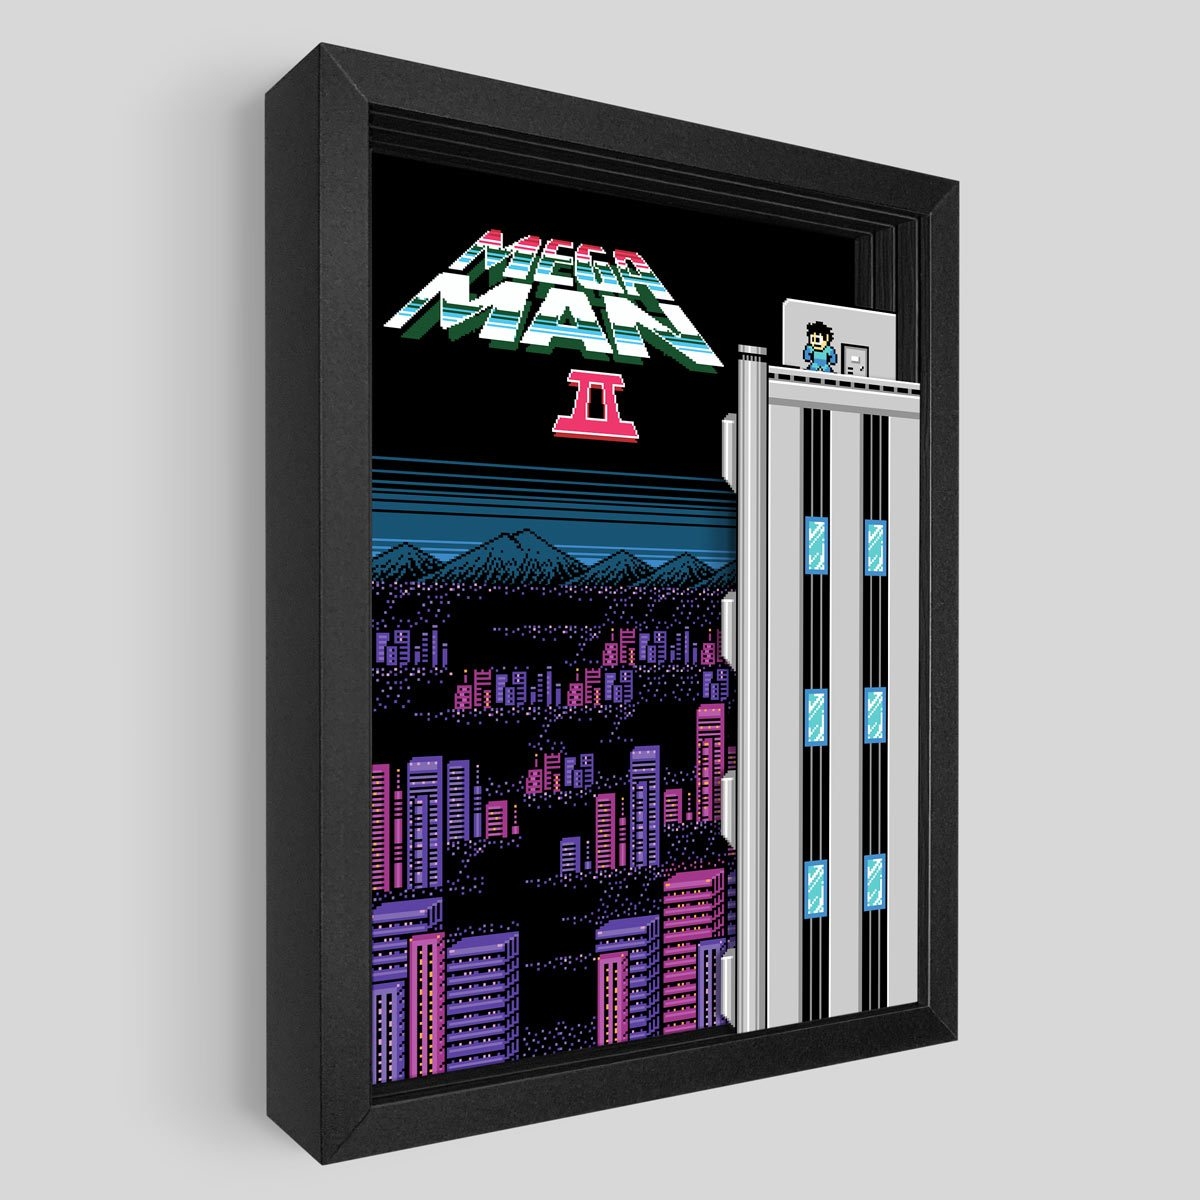 Mega Man 2 Shadowbox Art